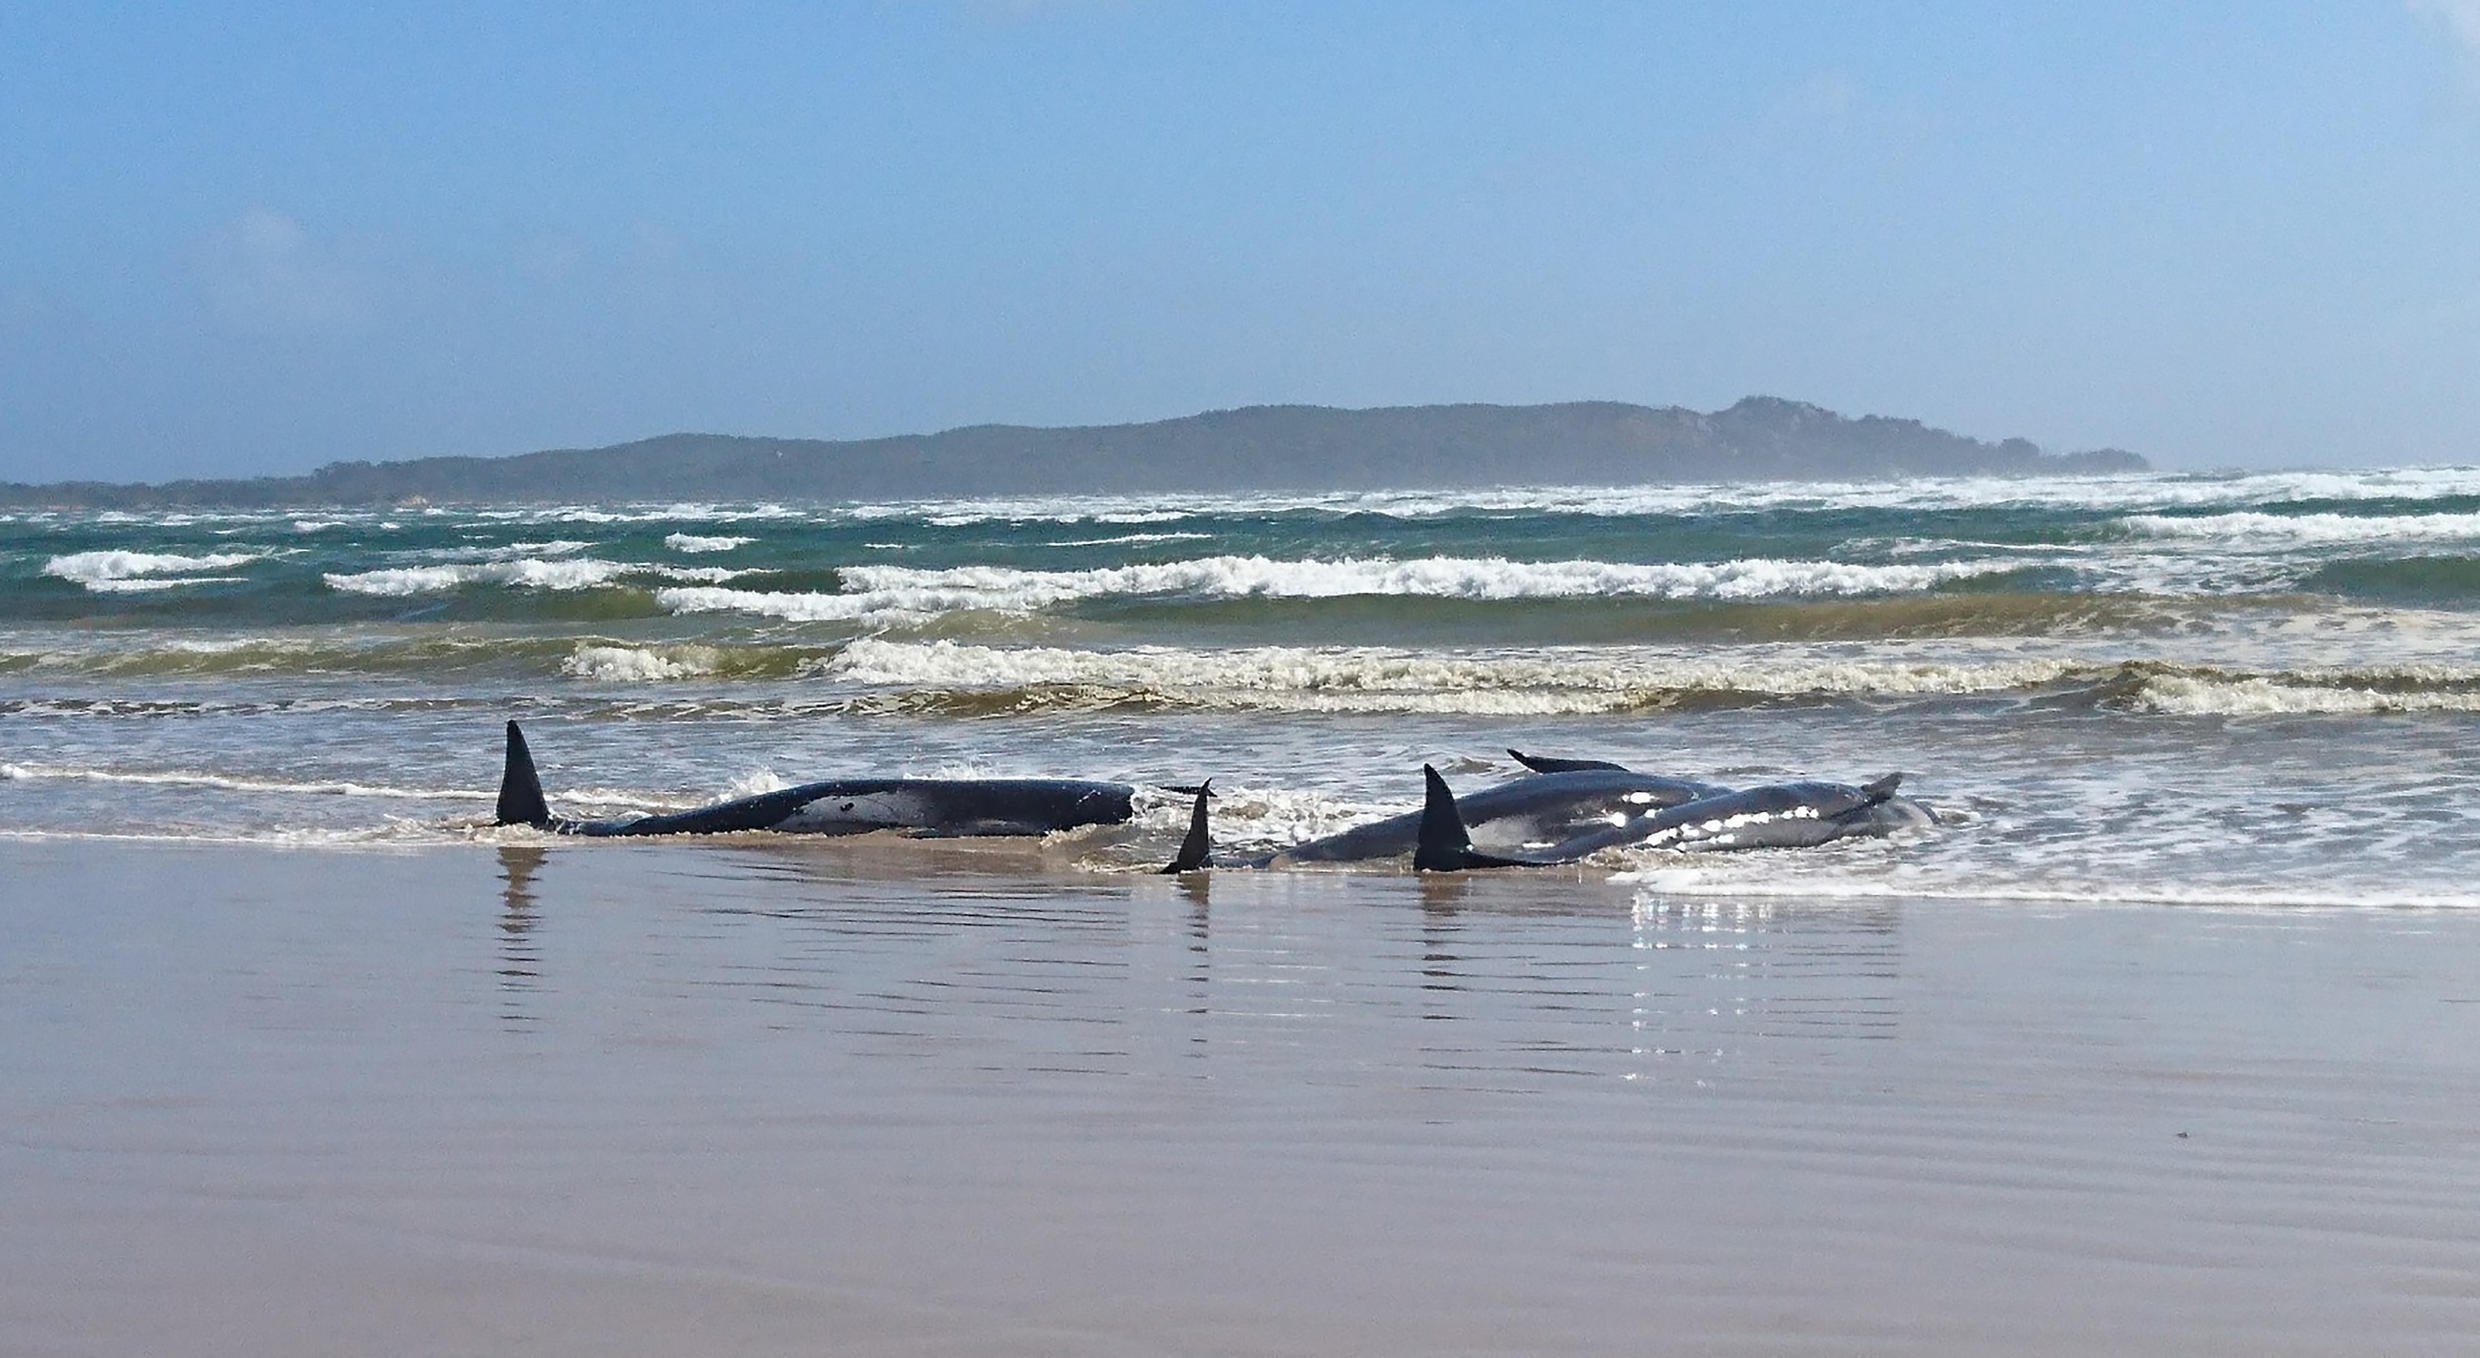 Hundreds of whales are stranded on a sandbar in Macquarie Harbour on the rugged west coast of Tasmania, in one of the biggest beachings the state has ever seen